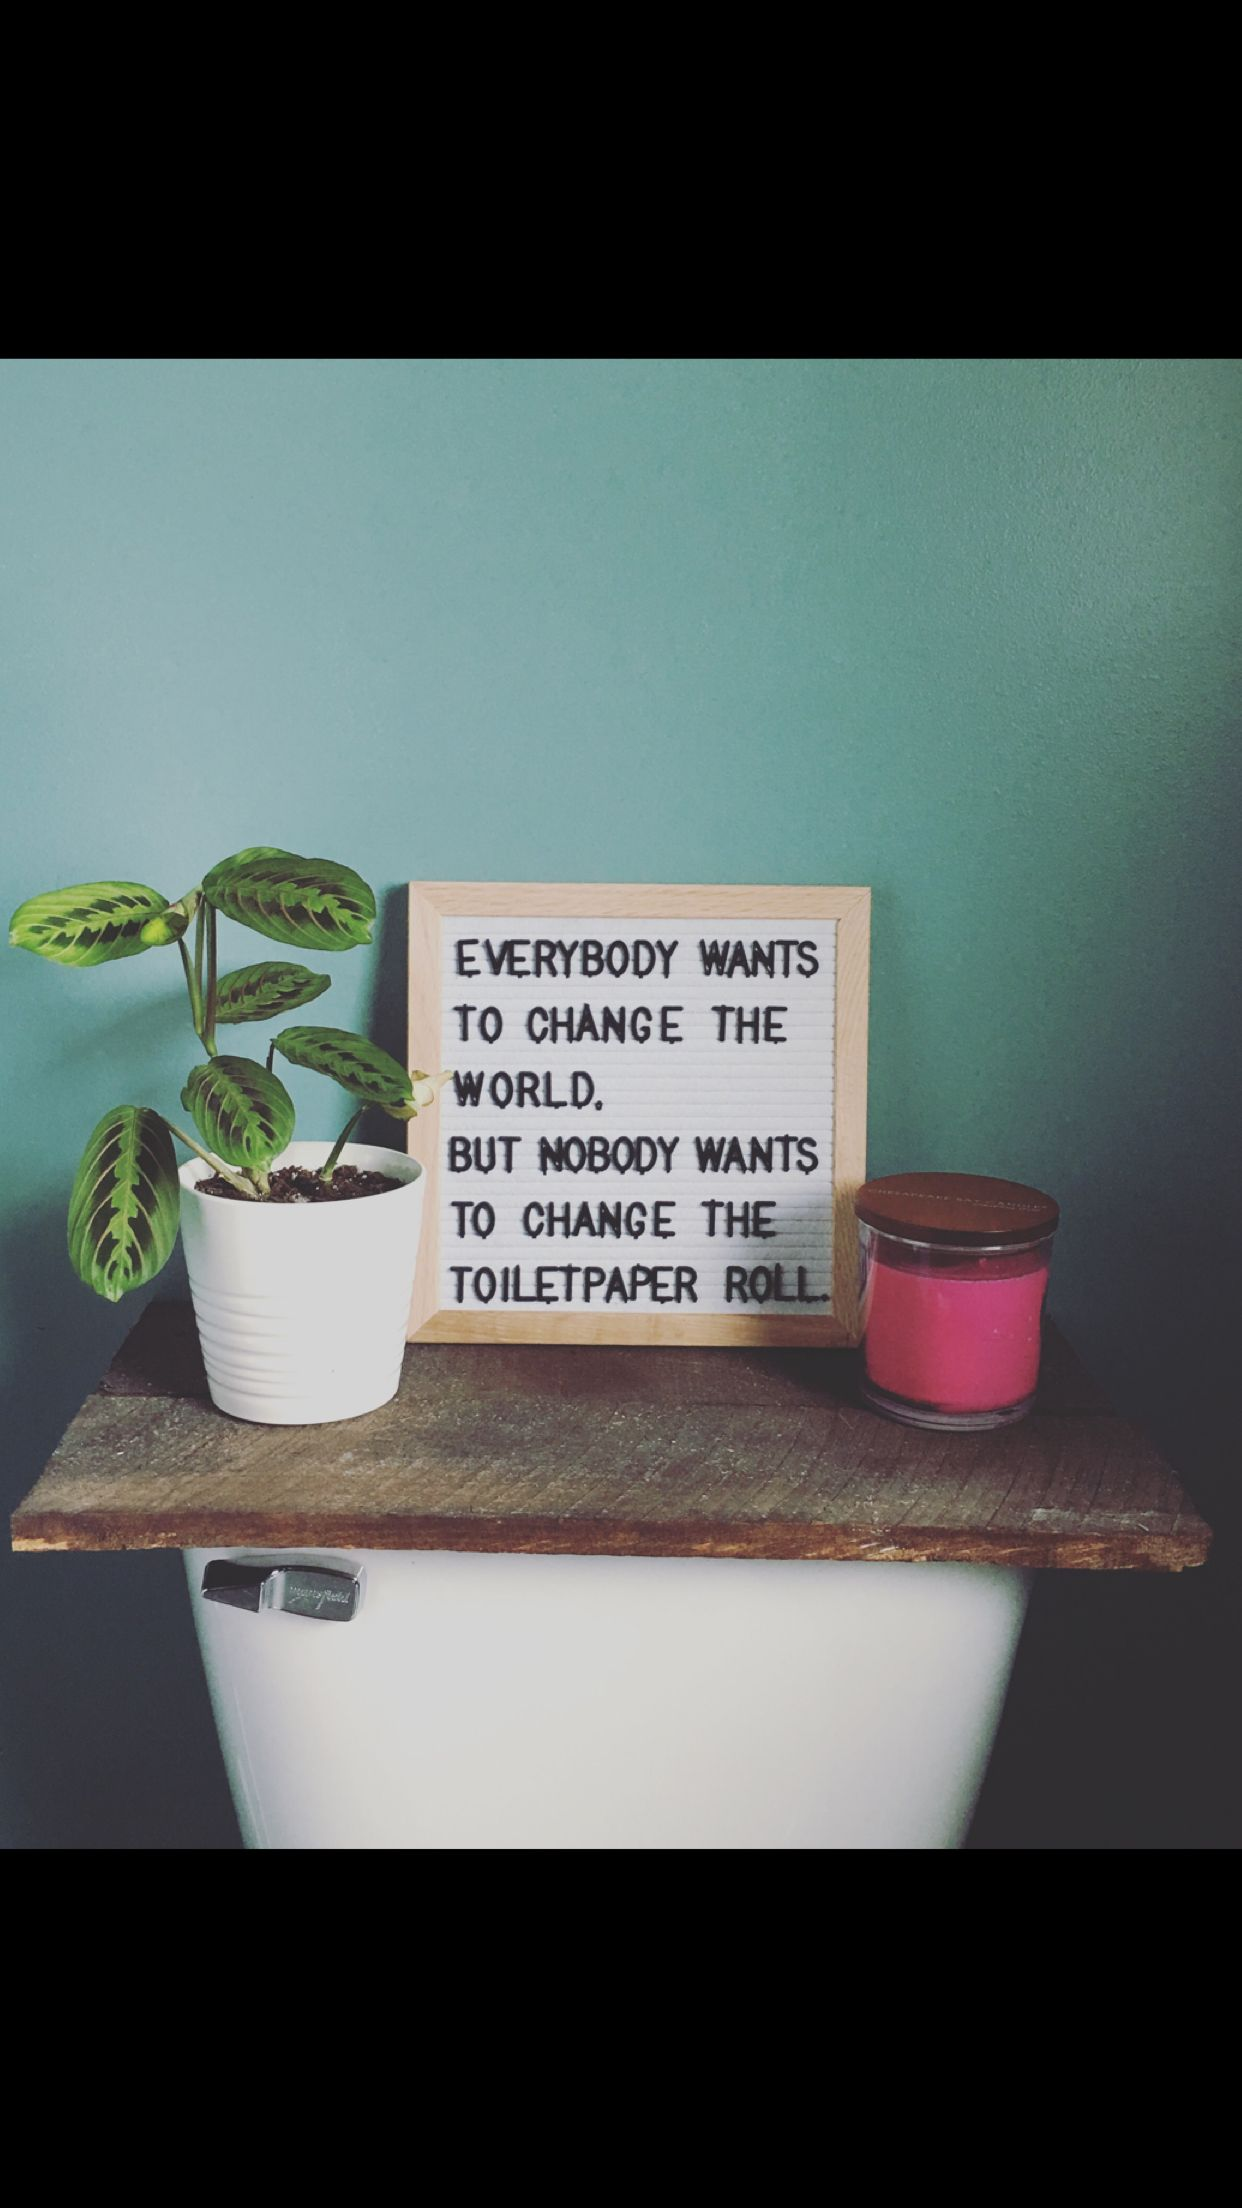 Bathroom letterboard quote